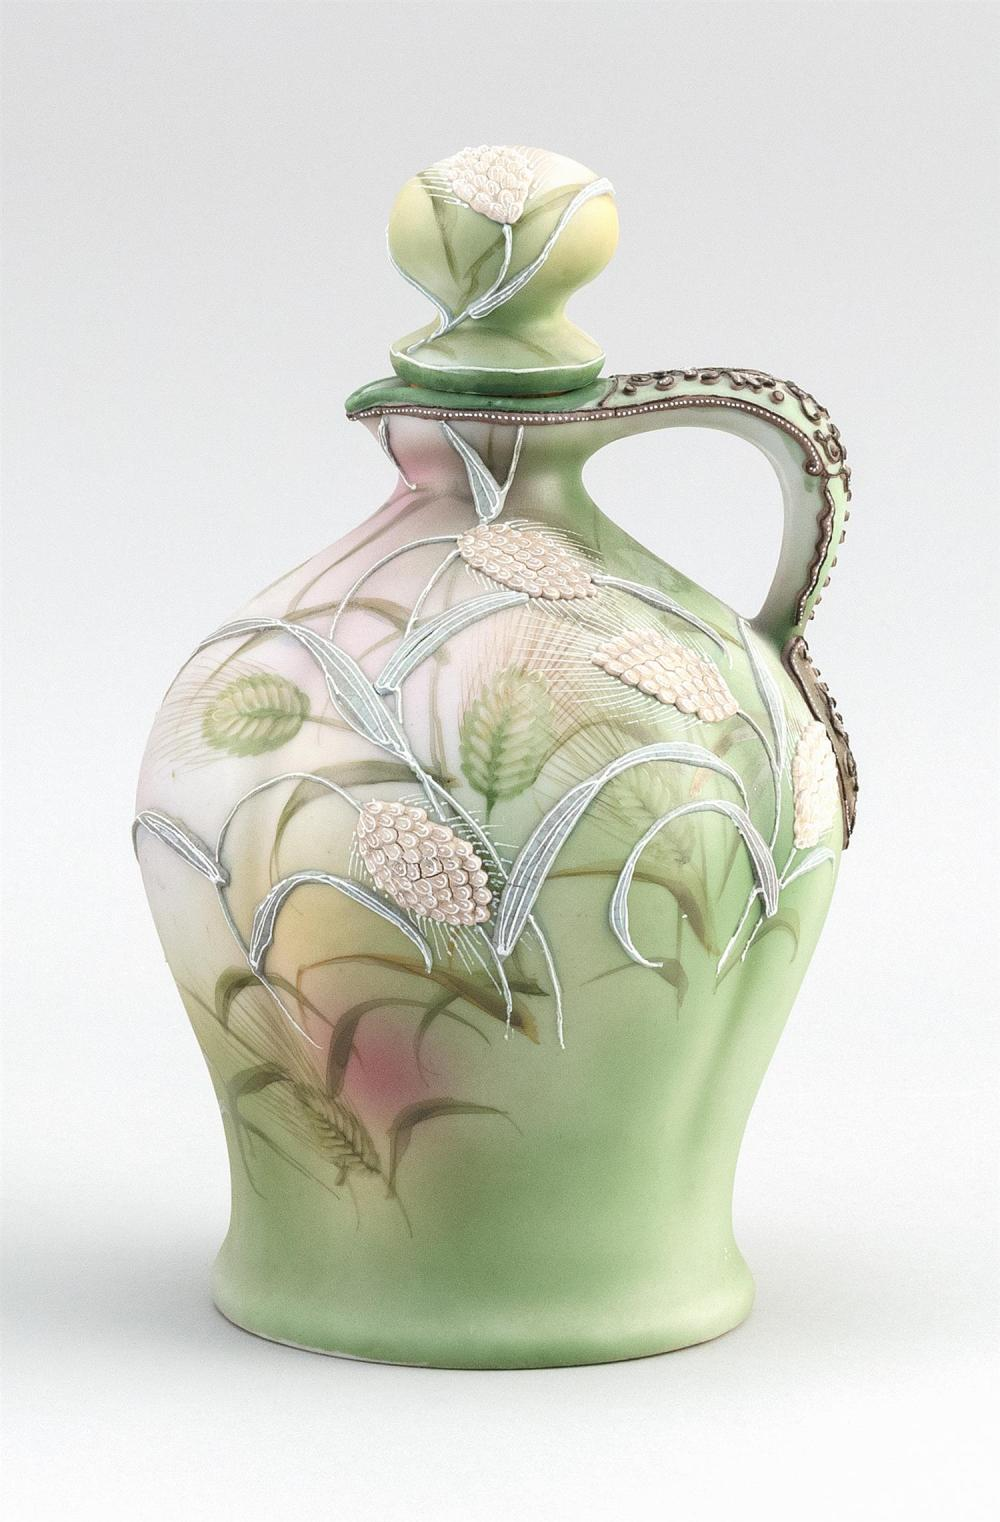 "MORIAGE NIPPON PORCELAIN CLARET JUG With moriage wheat design on a wheat-patterned ground. Van Patten #52 mark on base. Height 9""."